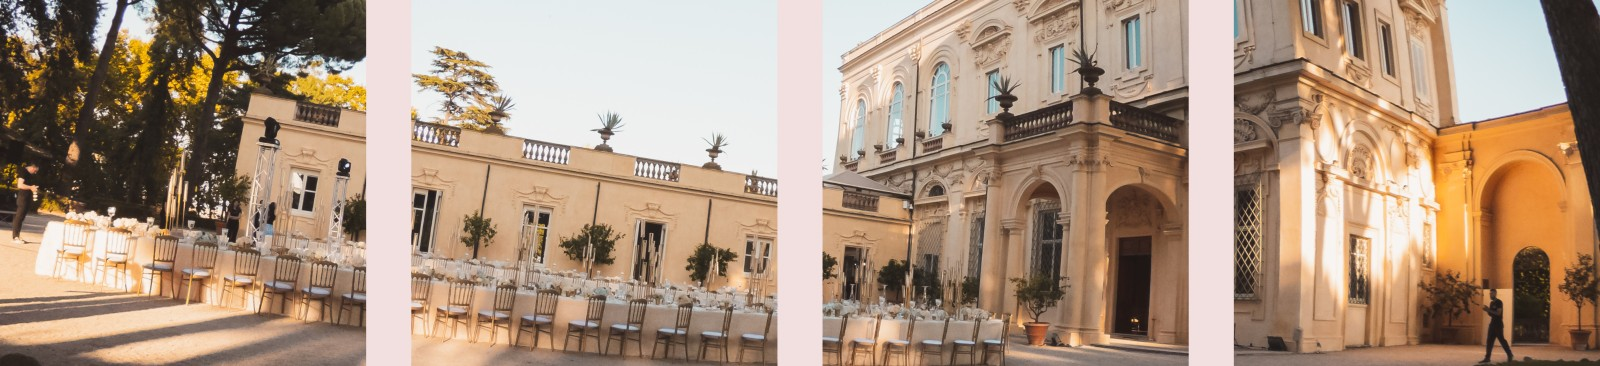 Luxury wedding allestito a Villa Aurelia a Roma